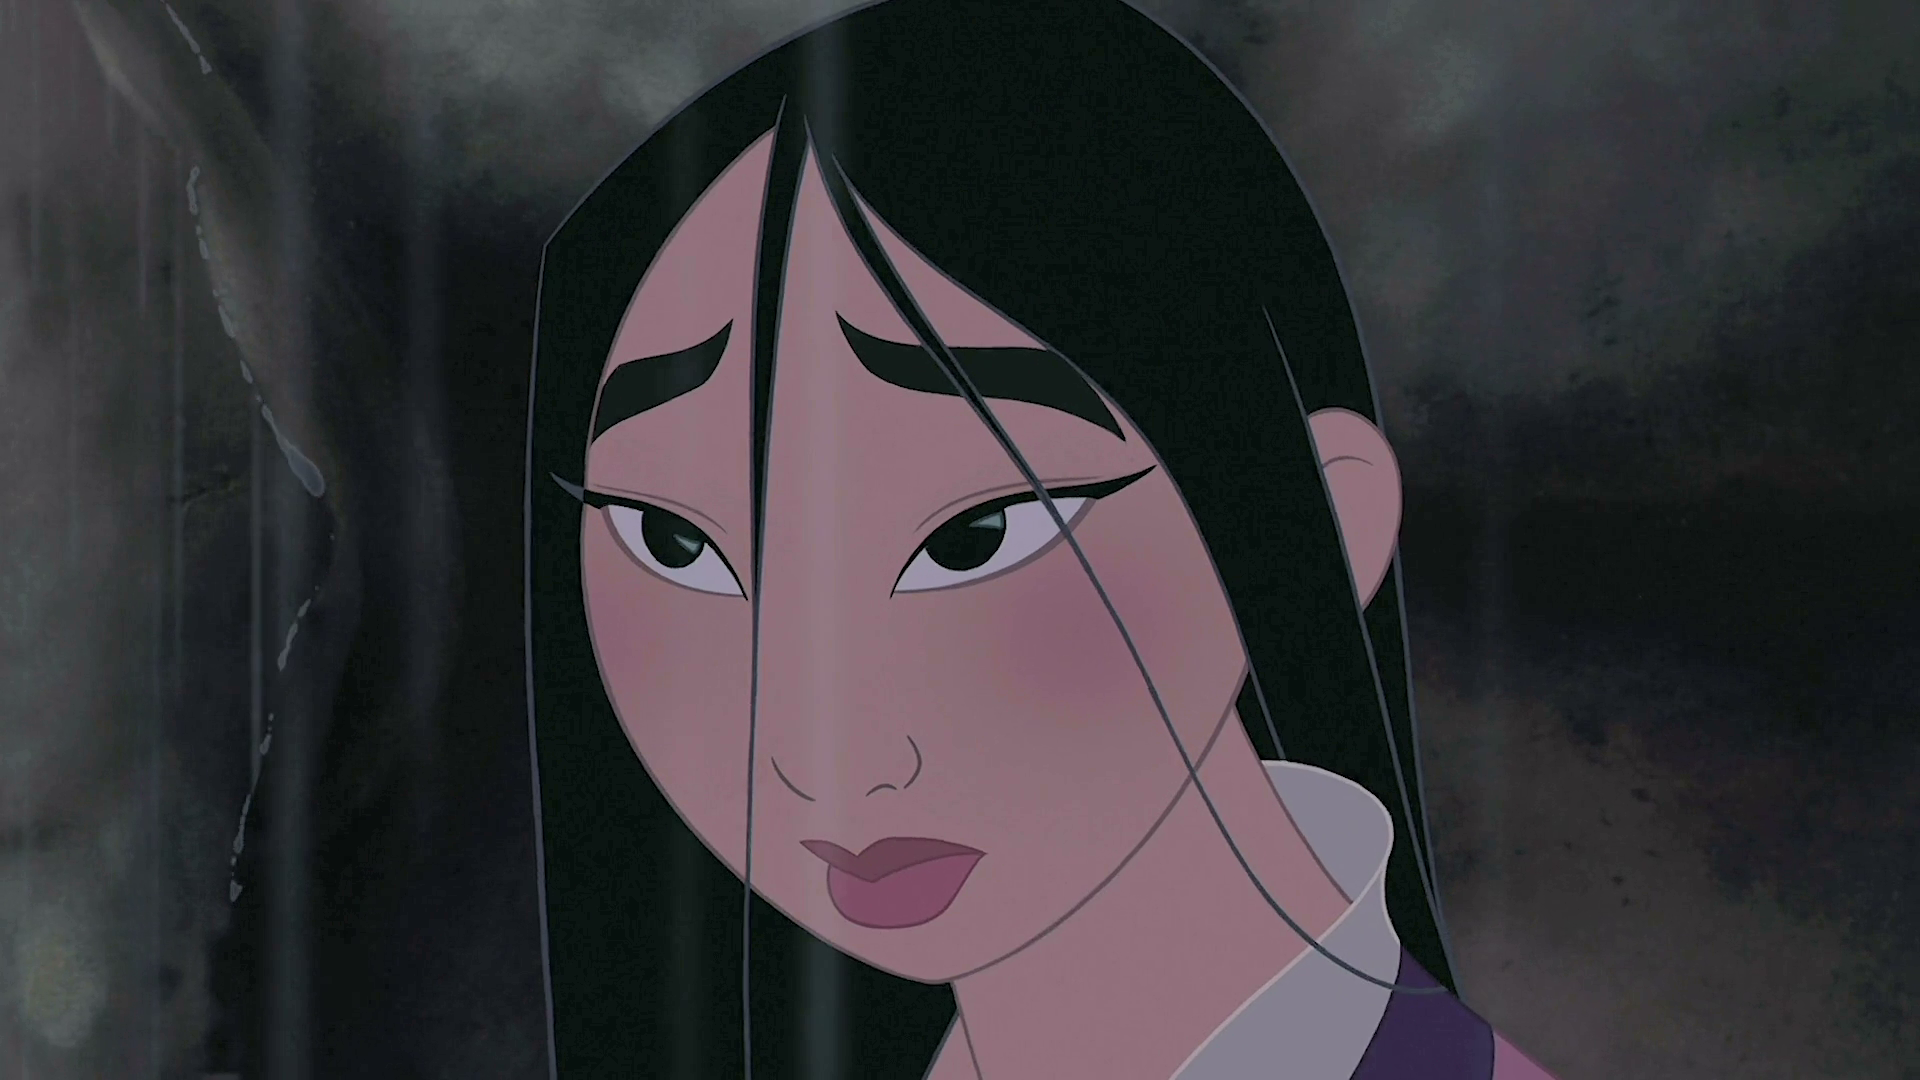 Mulan | 10 Quirky Facts About Mulan in 60 seconds